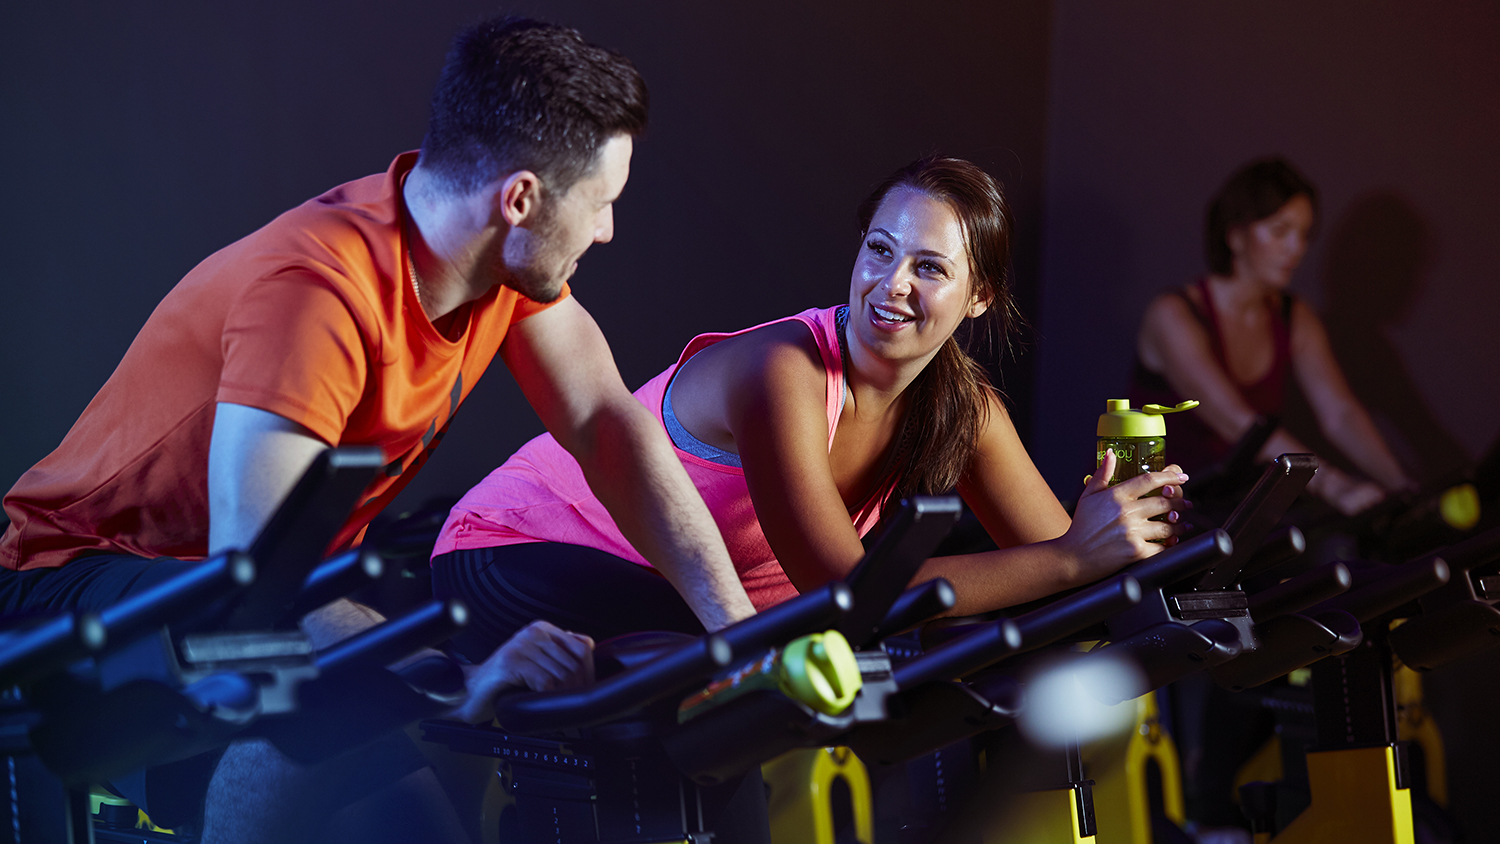 George Coppock Photography Commercial Advertising & Brands Leeds Spin Class.jpg